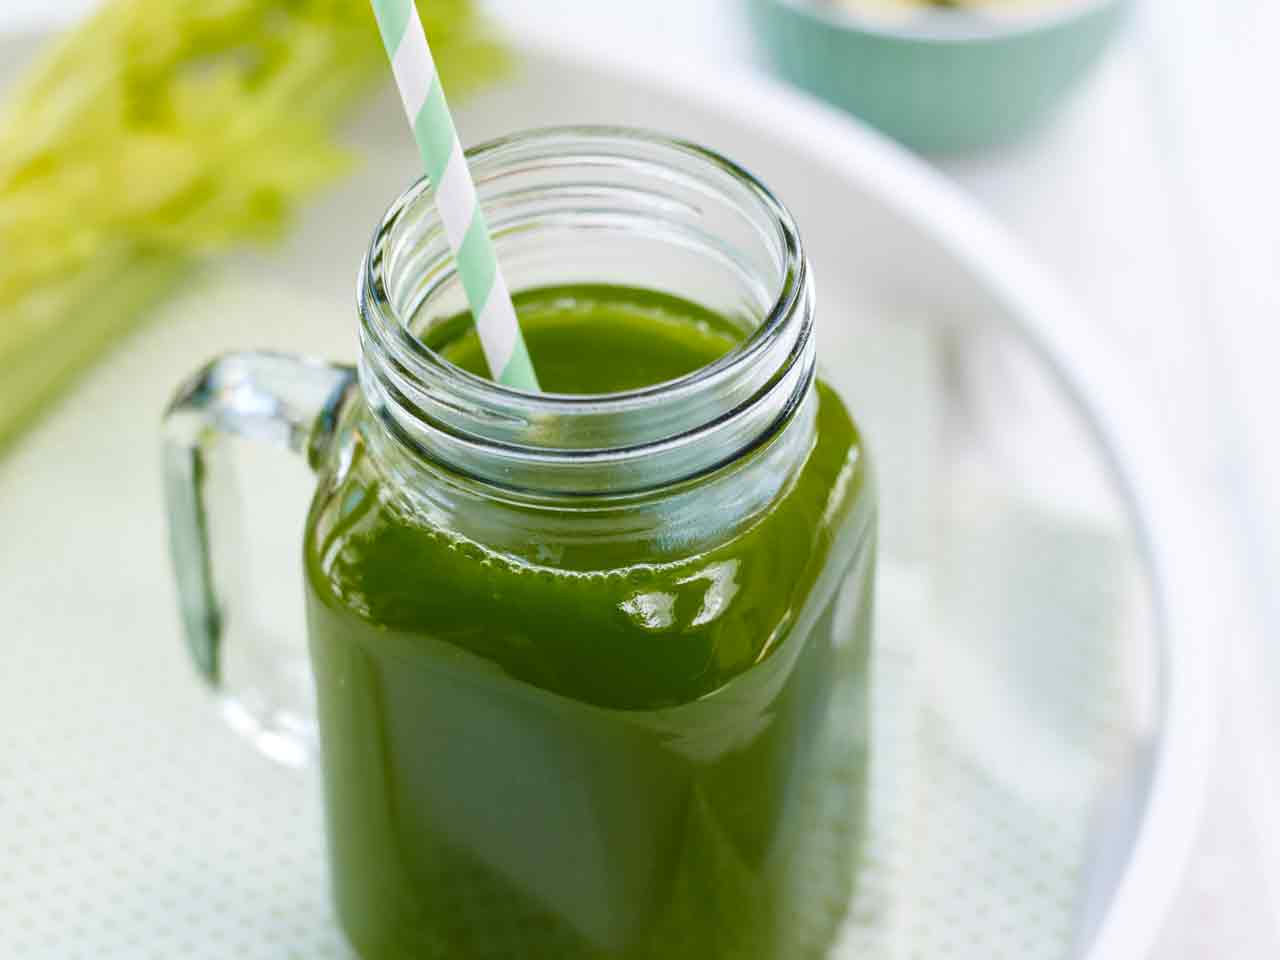 Spinach, celery and cucumber juice